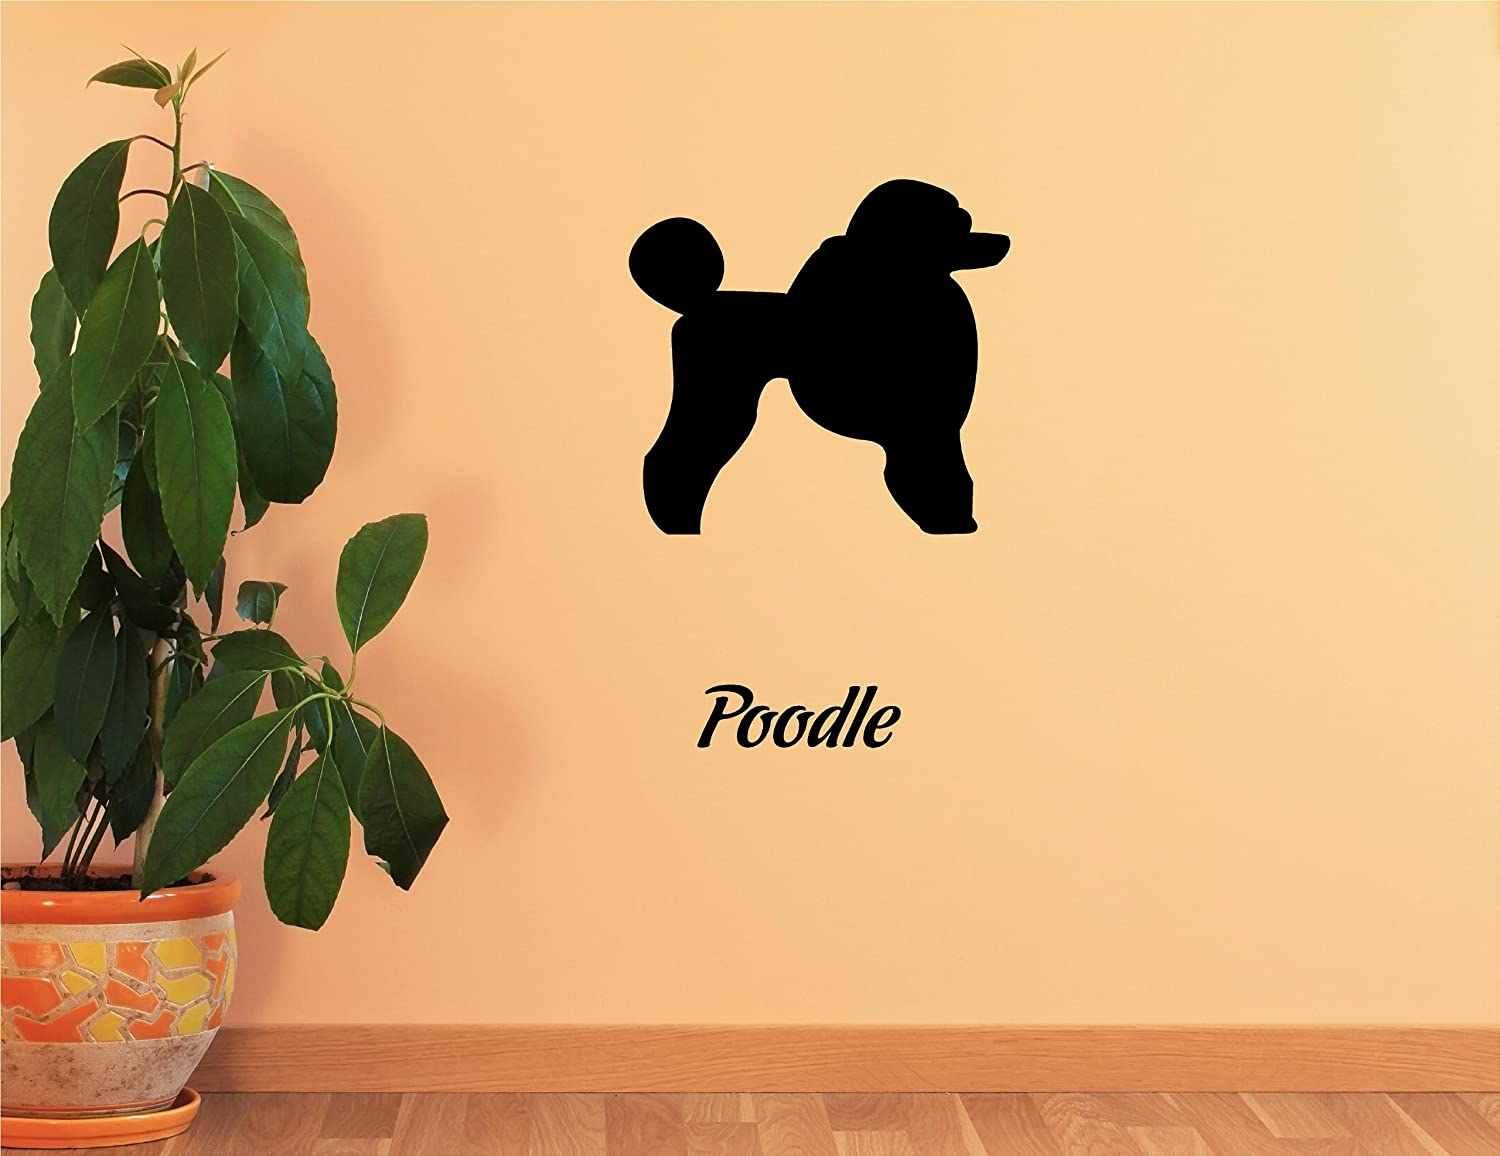 Amazon.com: Poodle Vinyl Wall Decals Quotes Sayings Words Art Decor ...